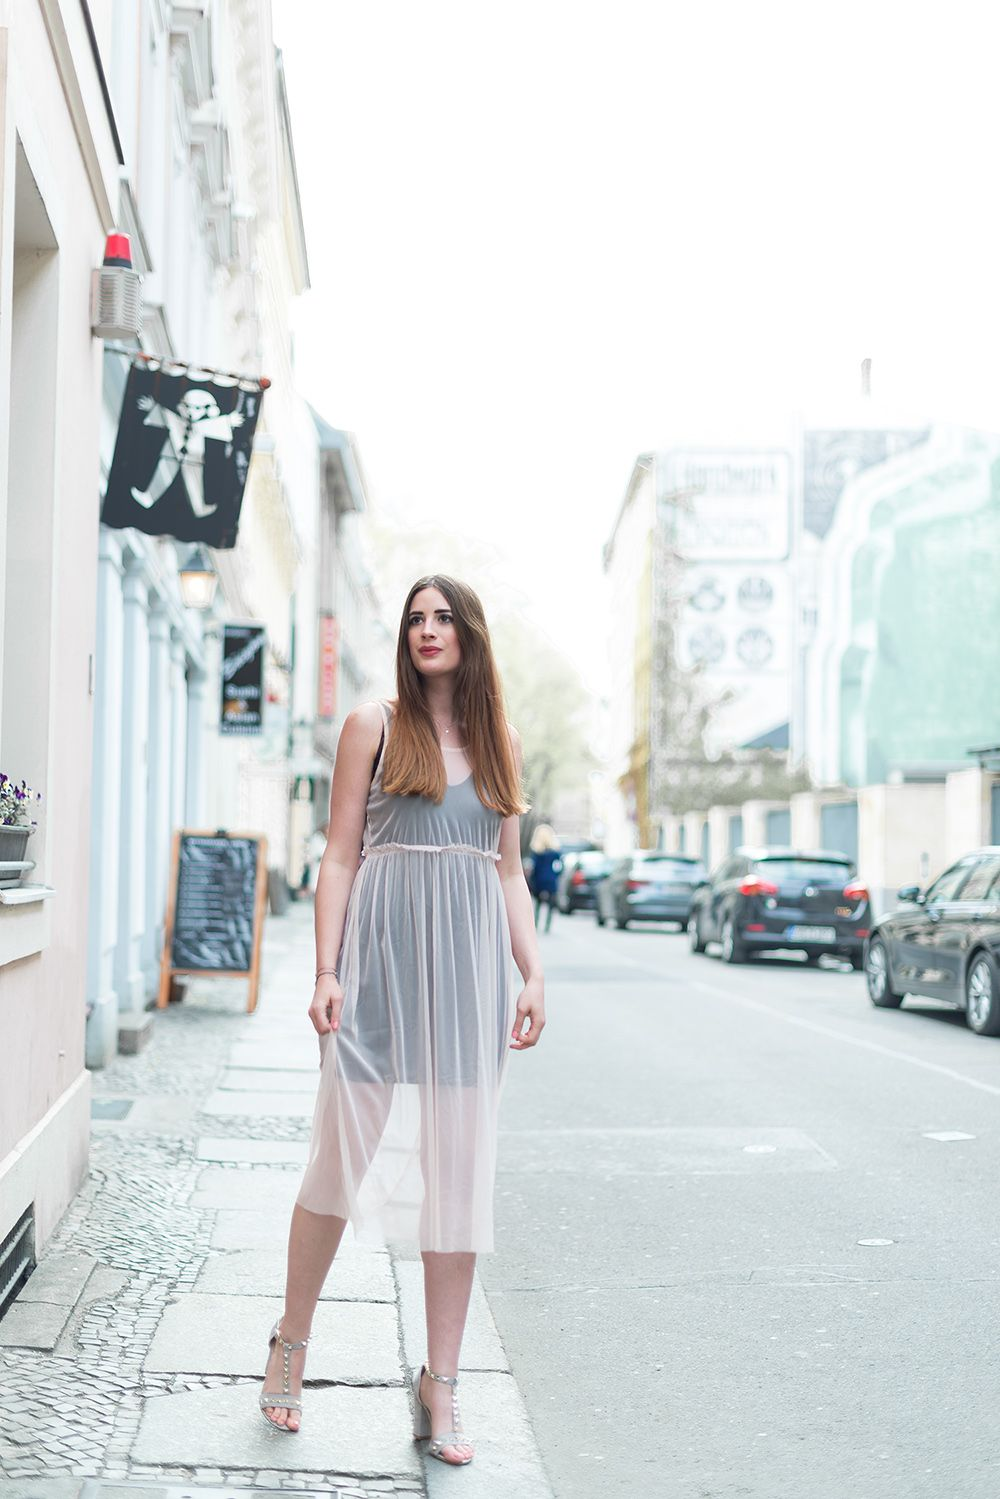 OUTFIT: Kronjuwelen und Pink Tulle | Dachs, Outfit und Frau